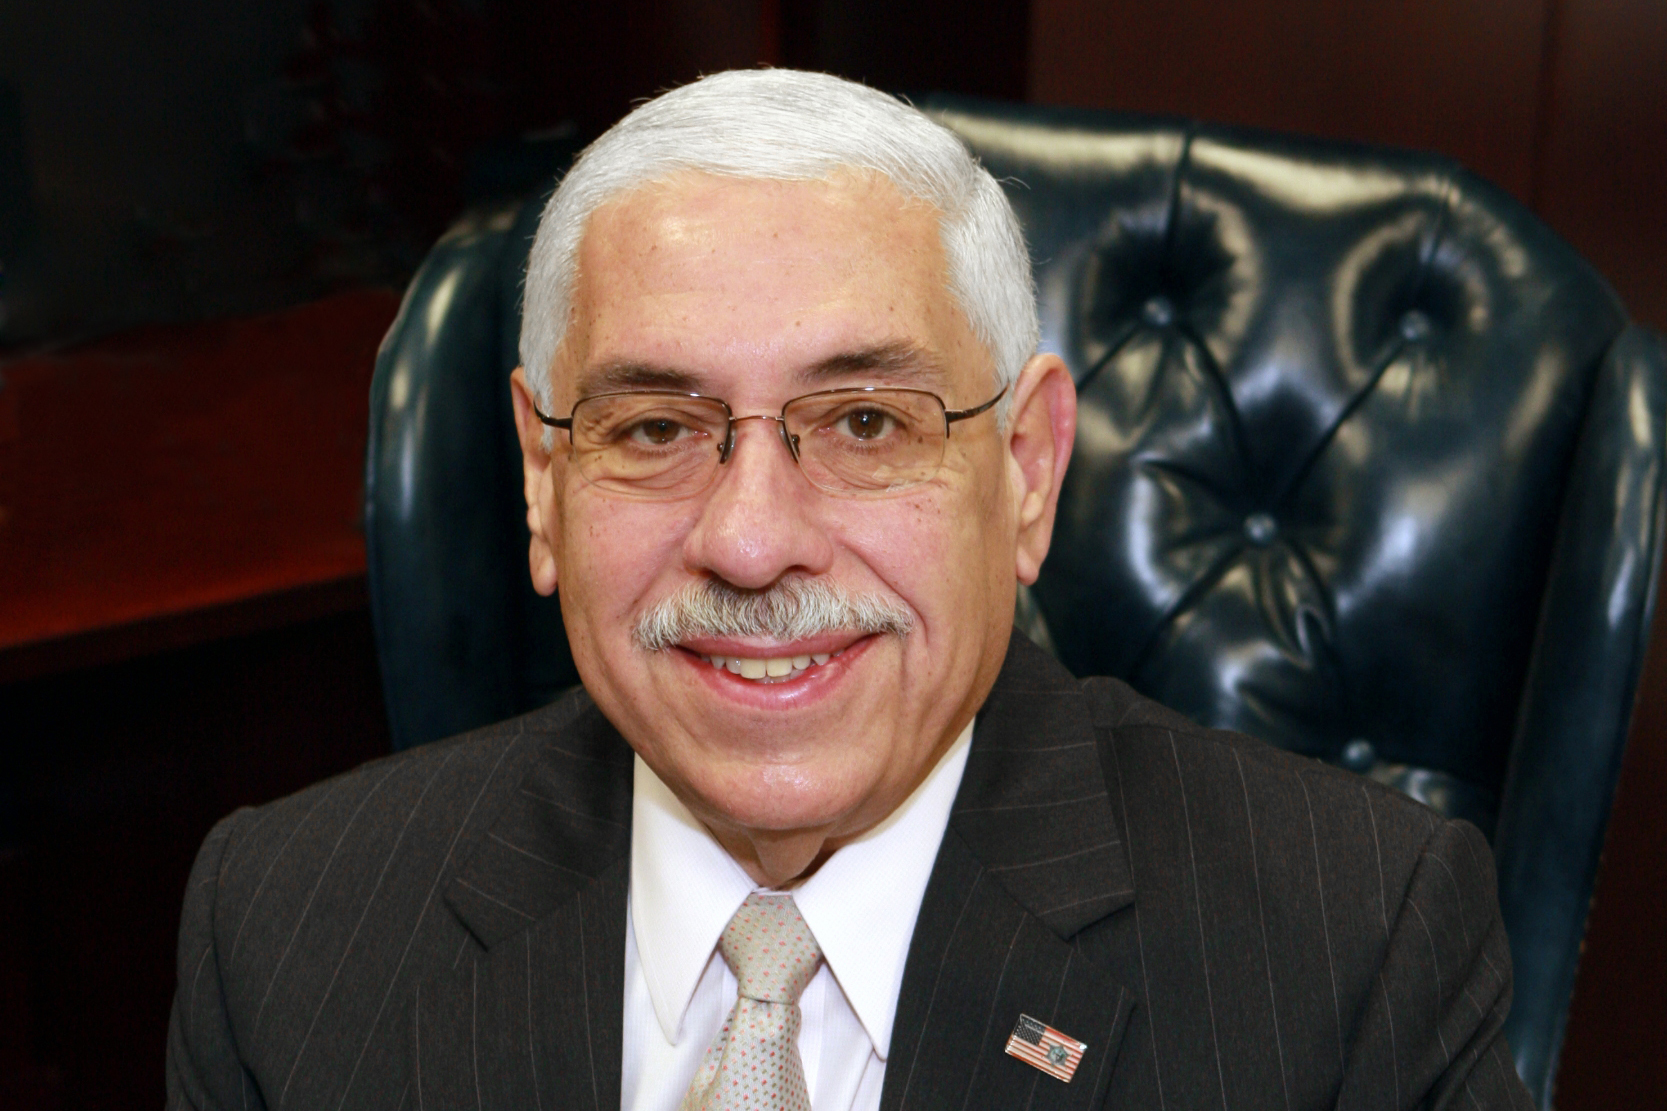 Joseph Berrios (Courtesy of the candidate)